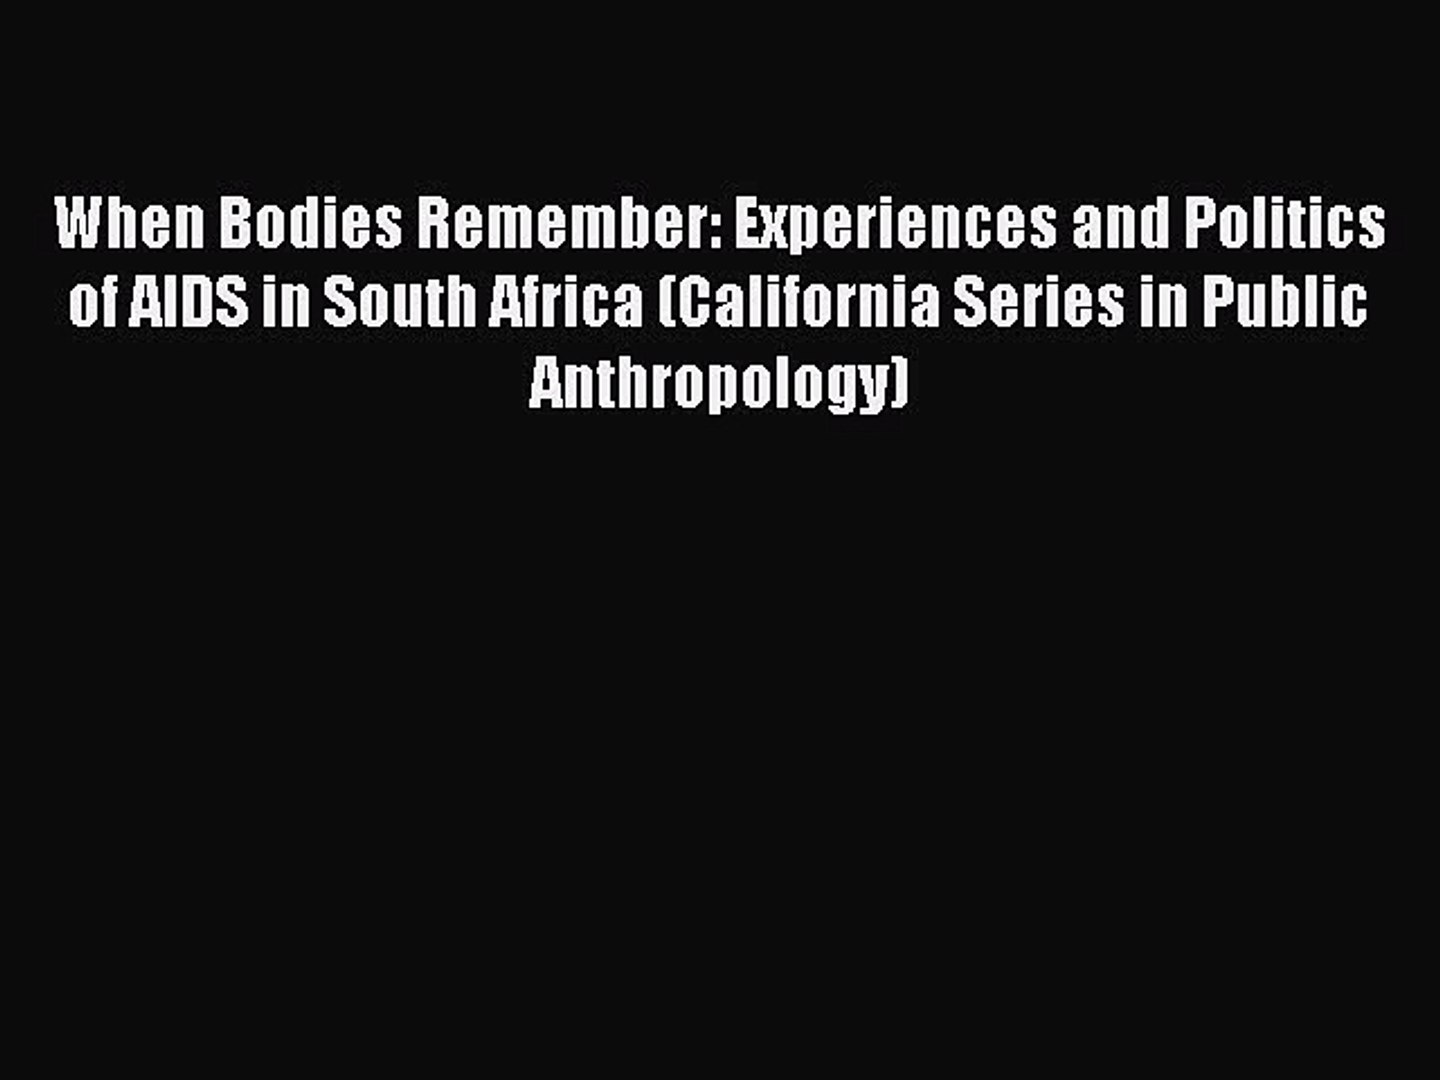 When Bodies Remember: Experiences and Politics of AIDS in South Africa (California Series in